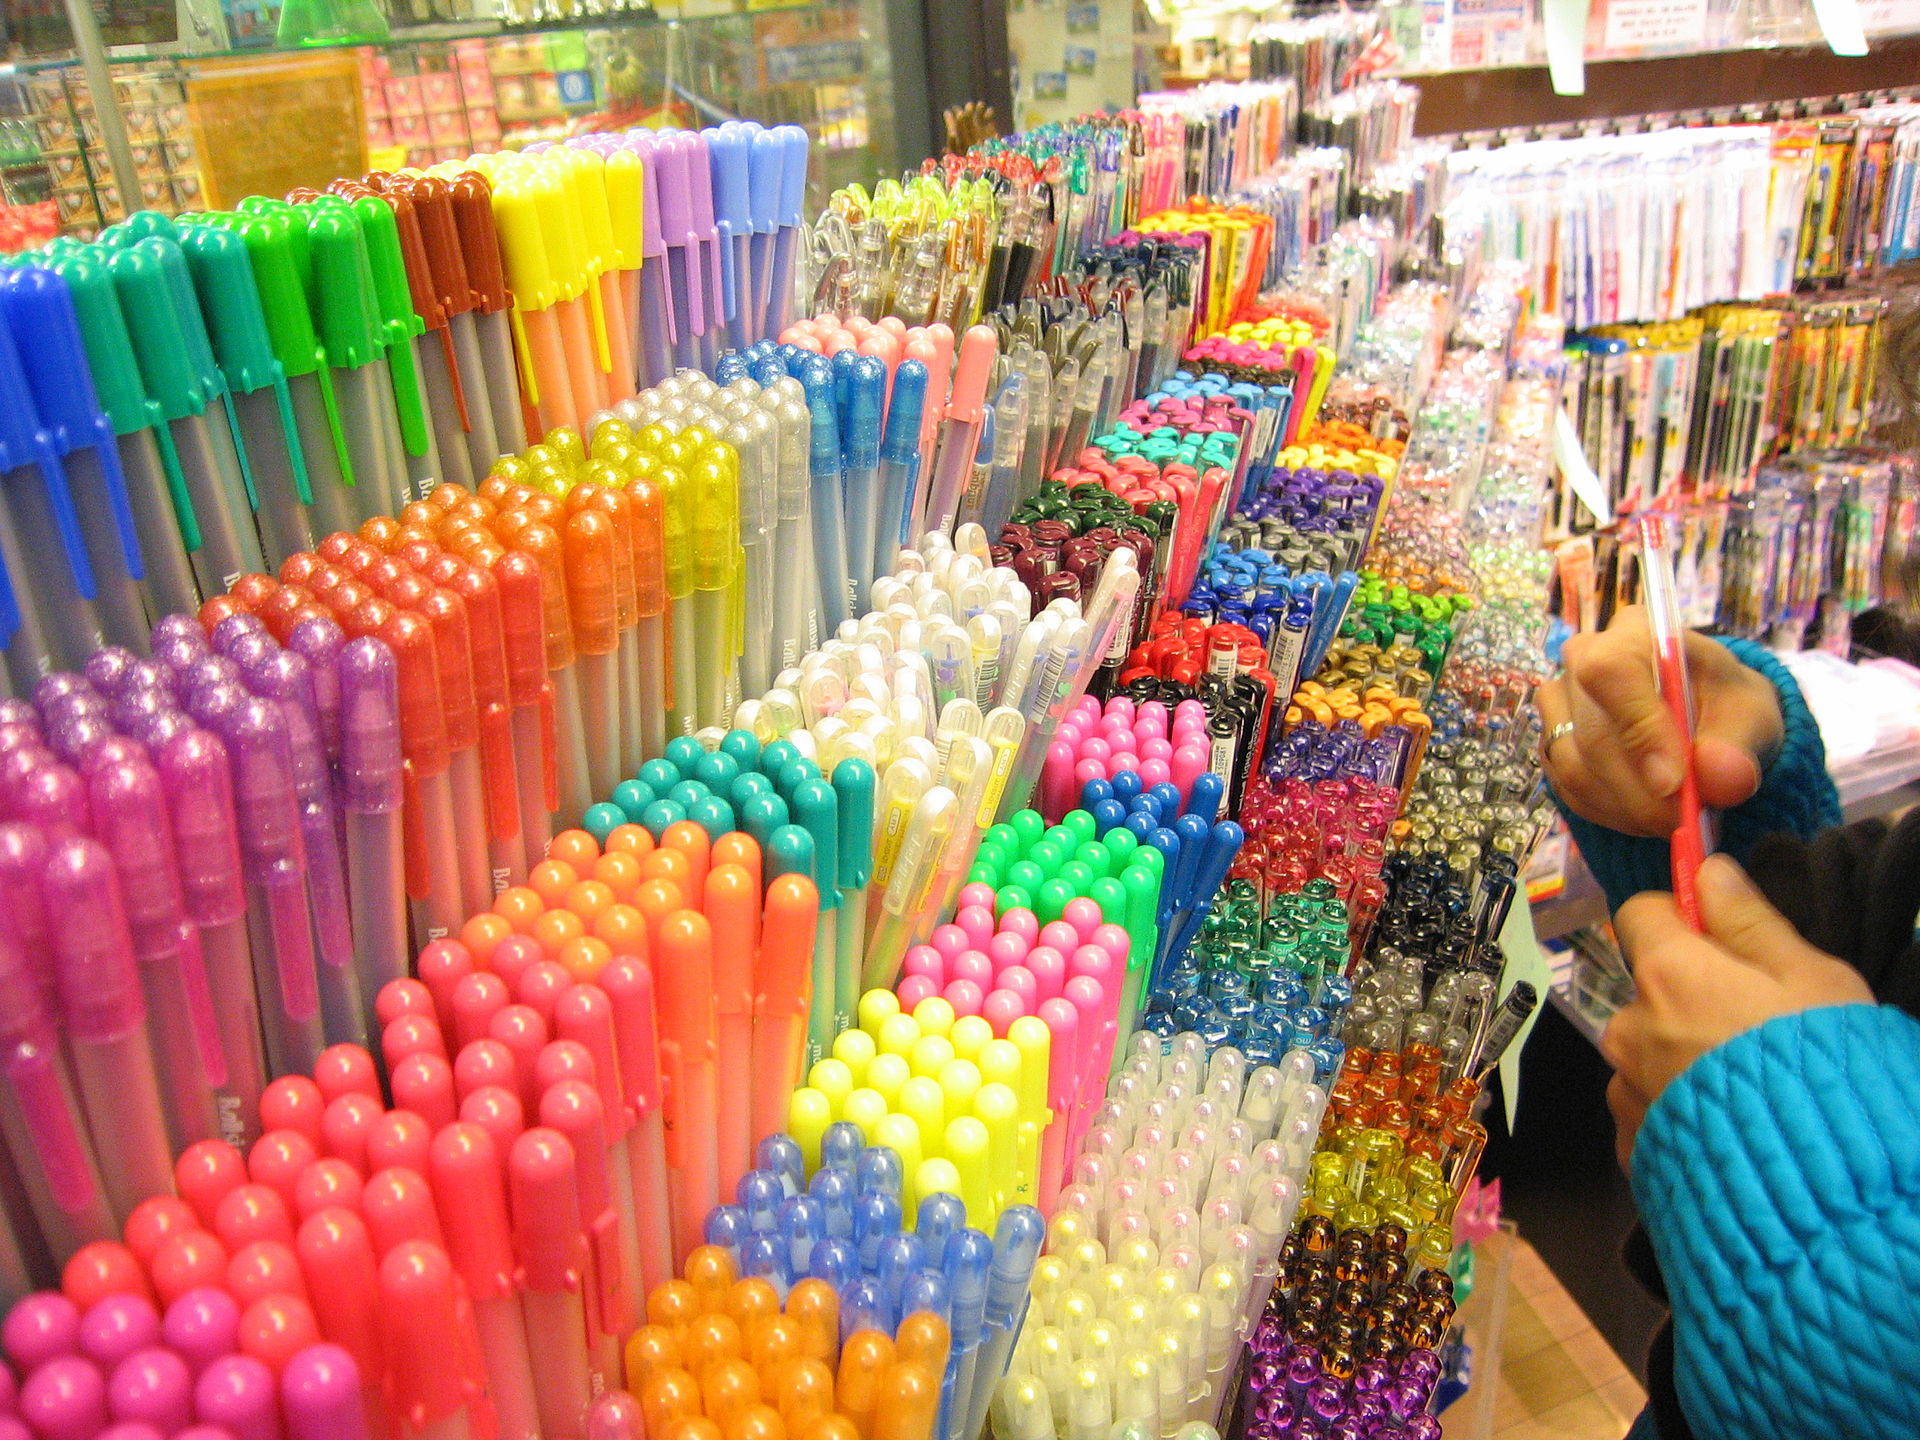 Item-Stylo Many colored pens.jpg